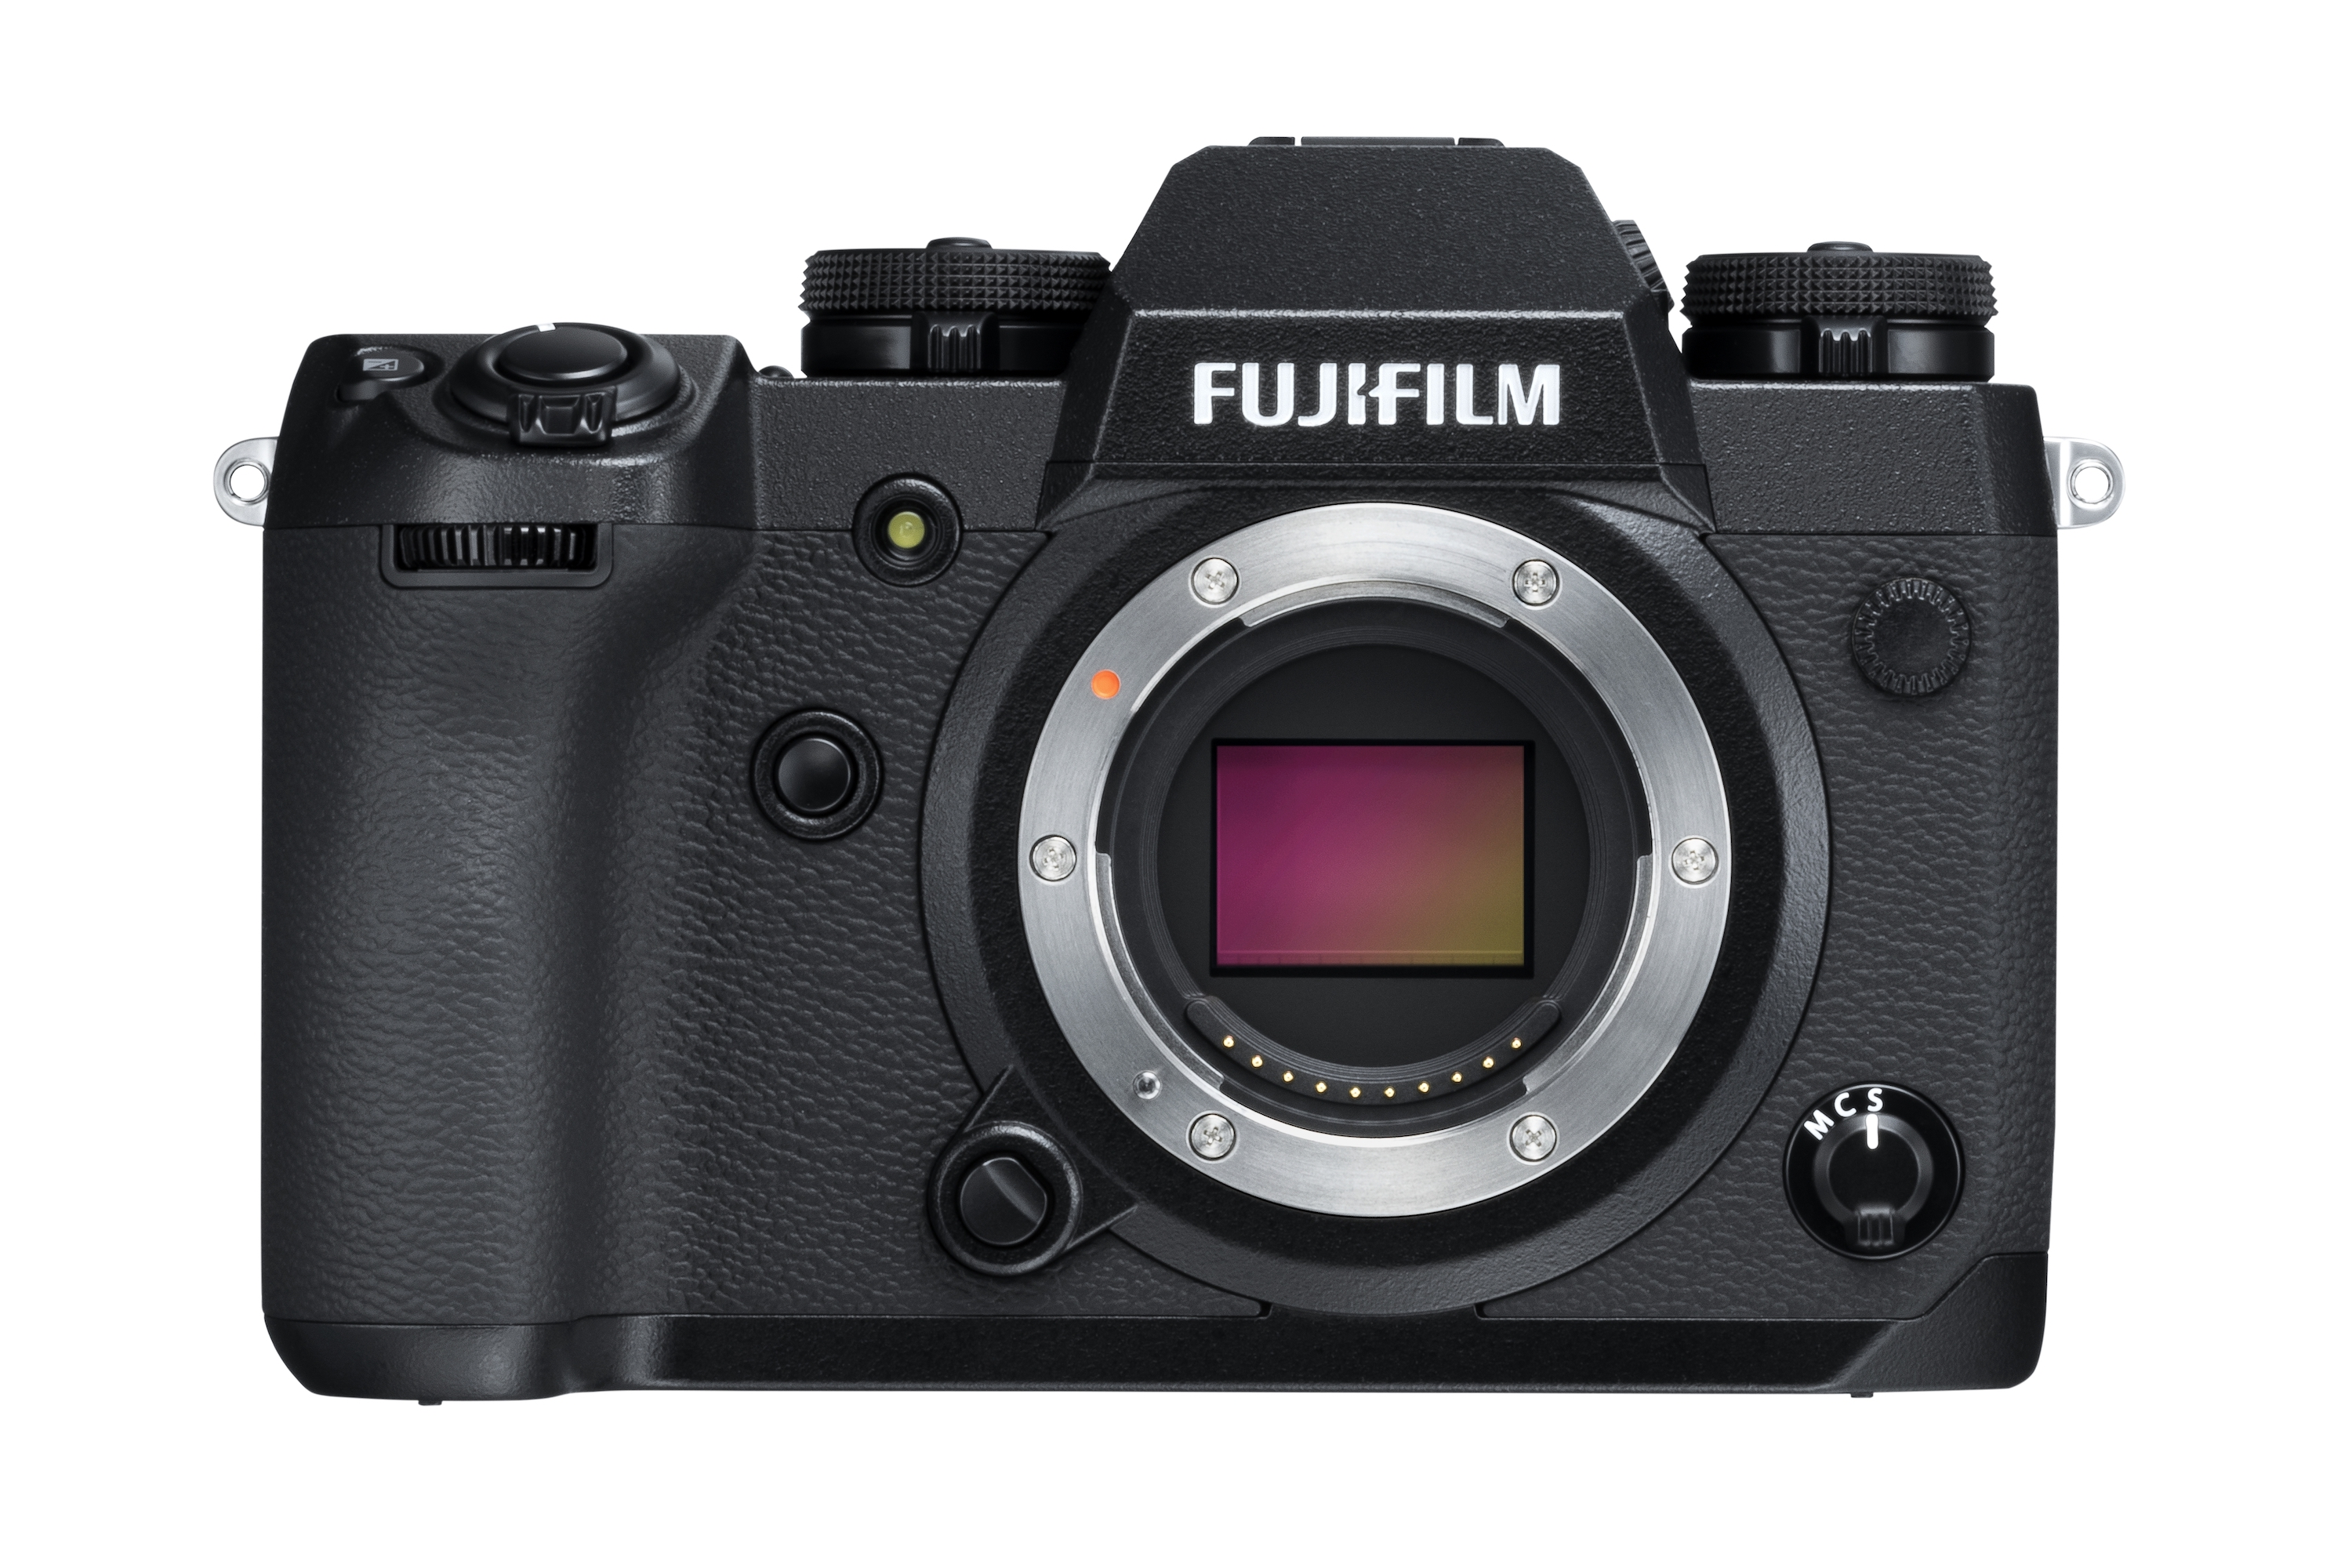 Fujifilm Adds X-H1 Camera in its X Series Lineup